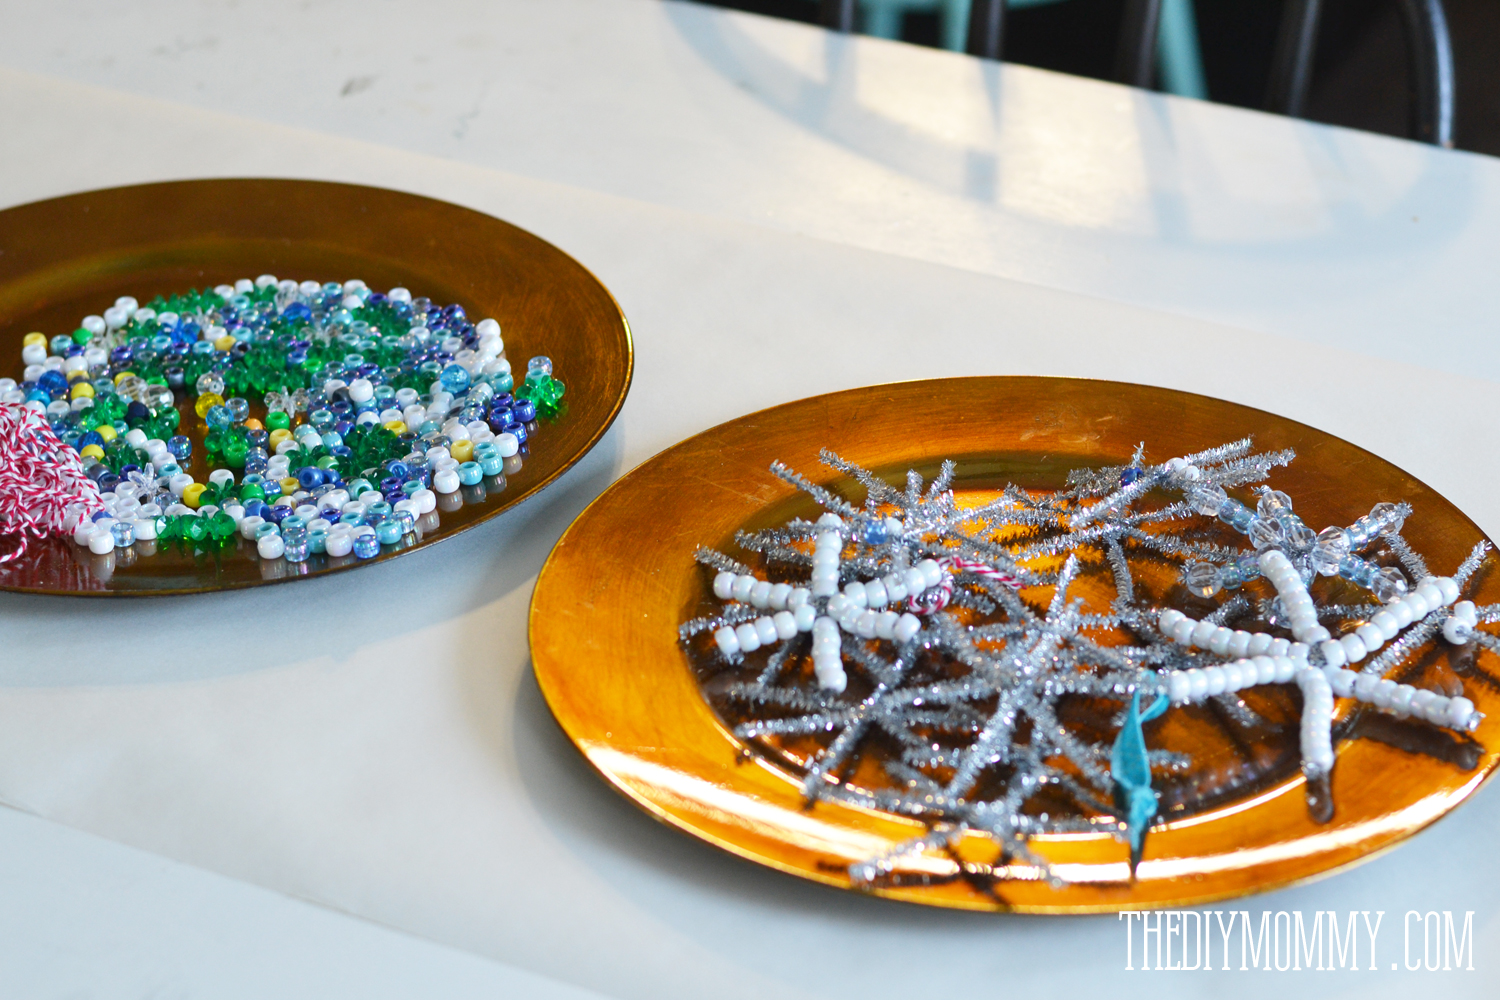 A craft for a Frozen birthday party: snowflake ornaments from pipe cleaners and beads